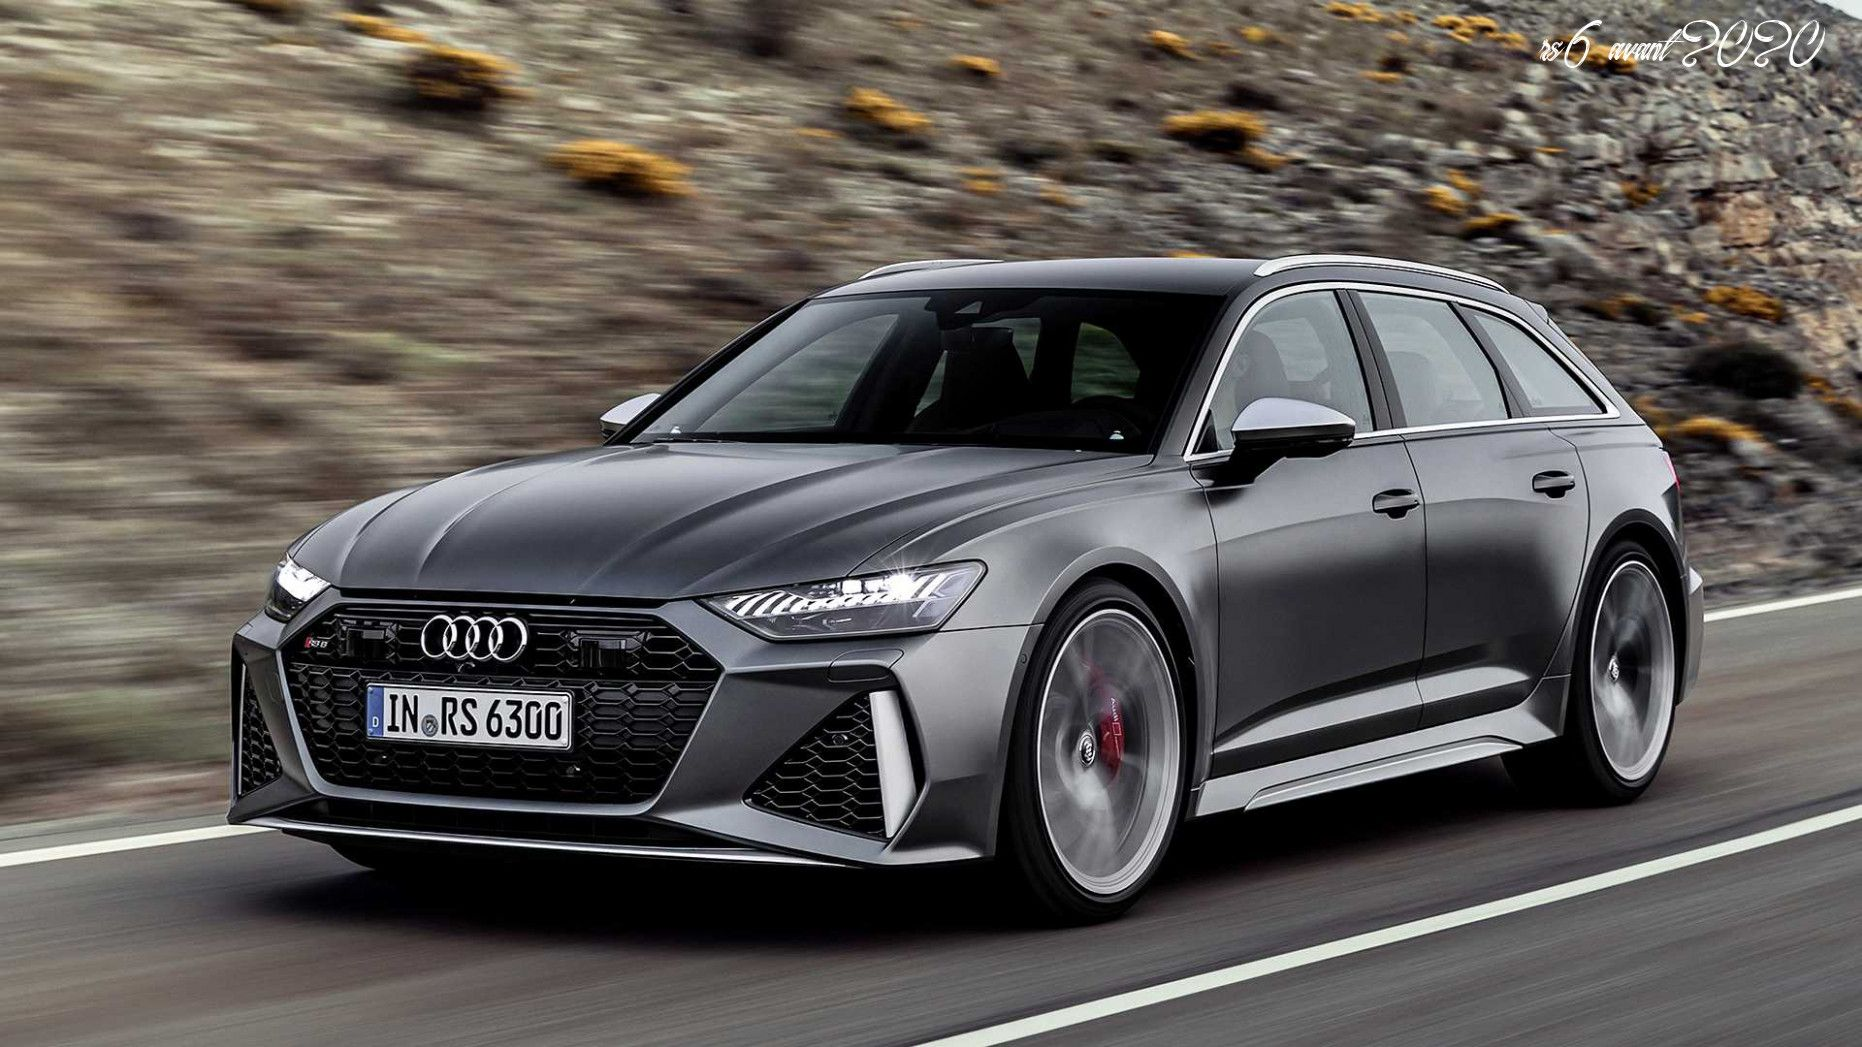 Rs6 Avant 2020 Price And Release Date In 2020 Audi Rs6 Audi Rs Porsche Panamera